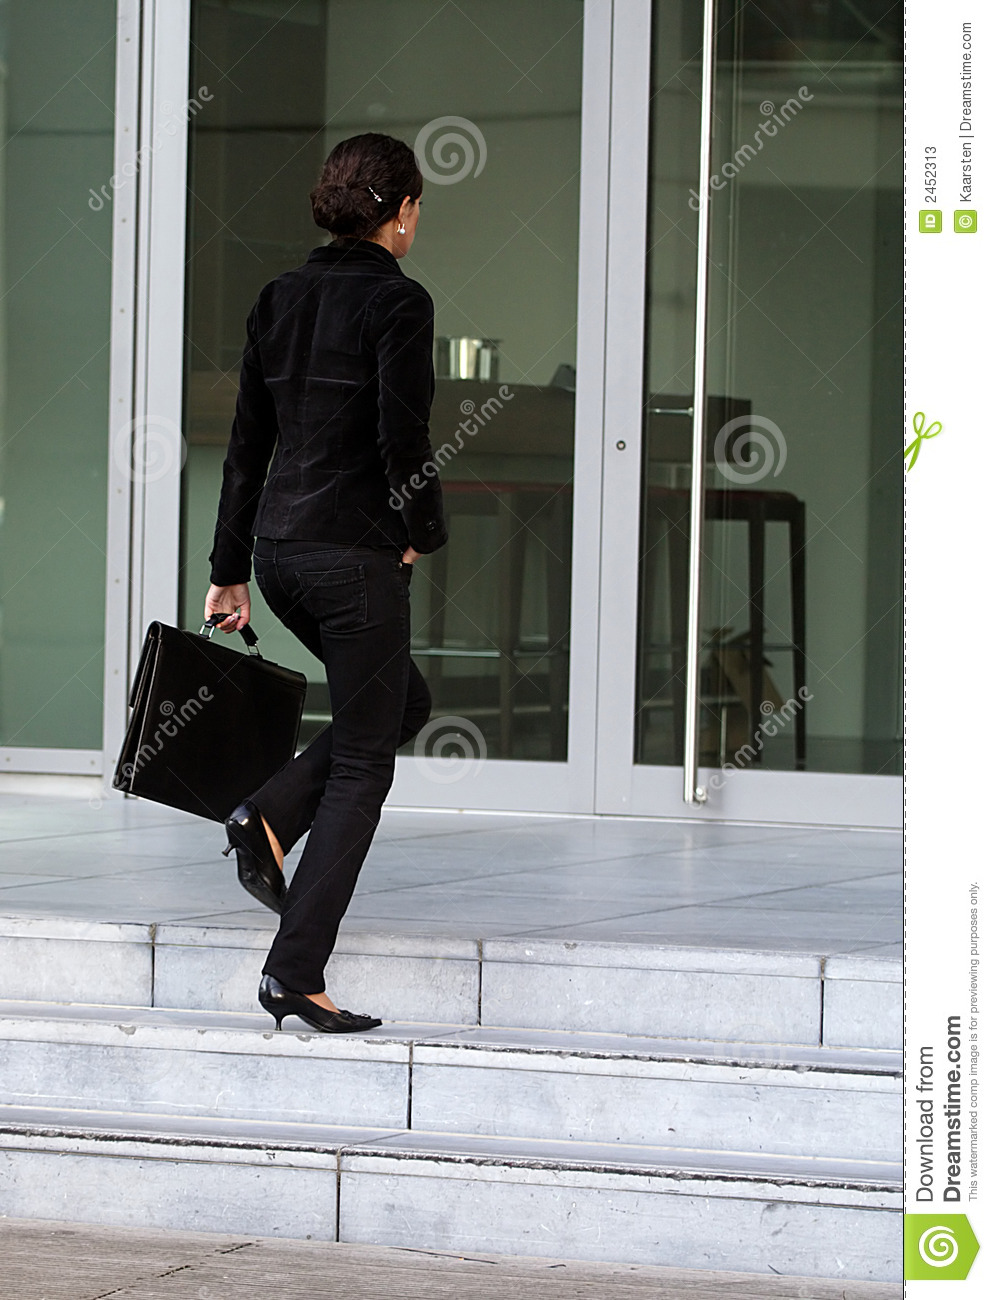 Businesswoman Going To Work Stock Image - Image of brisk ...